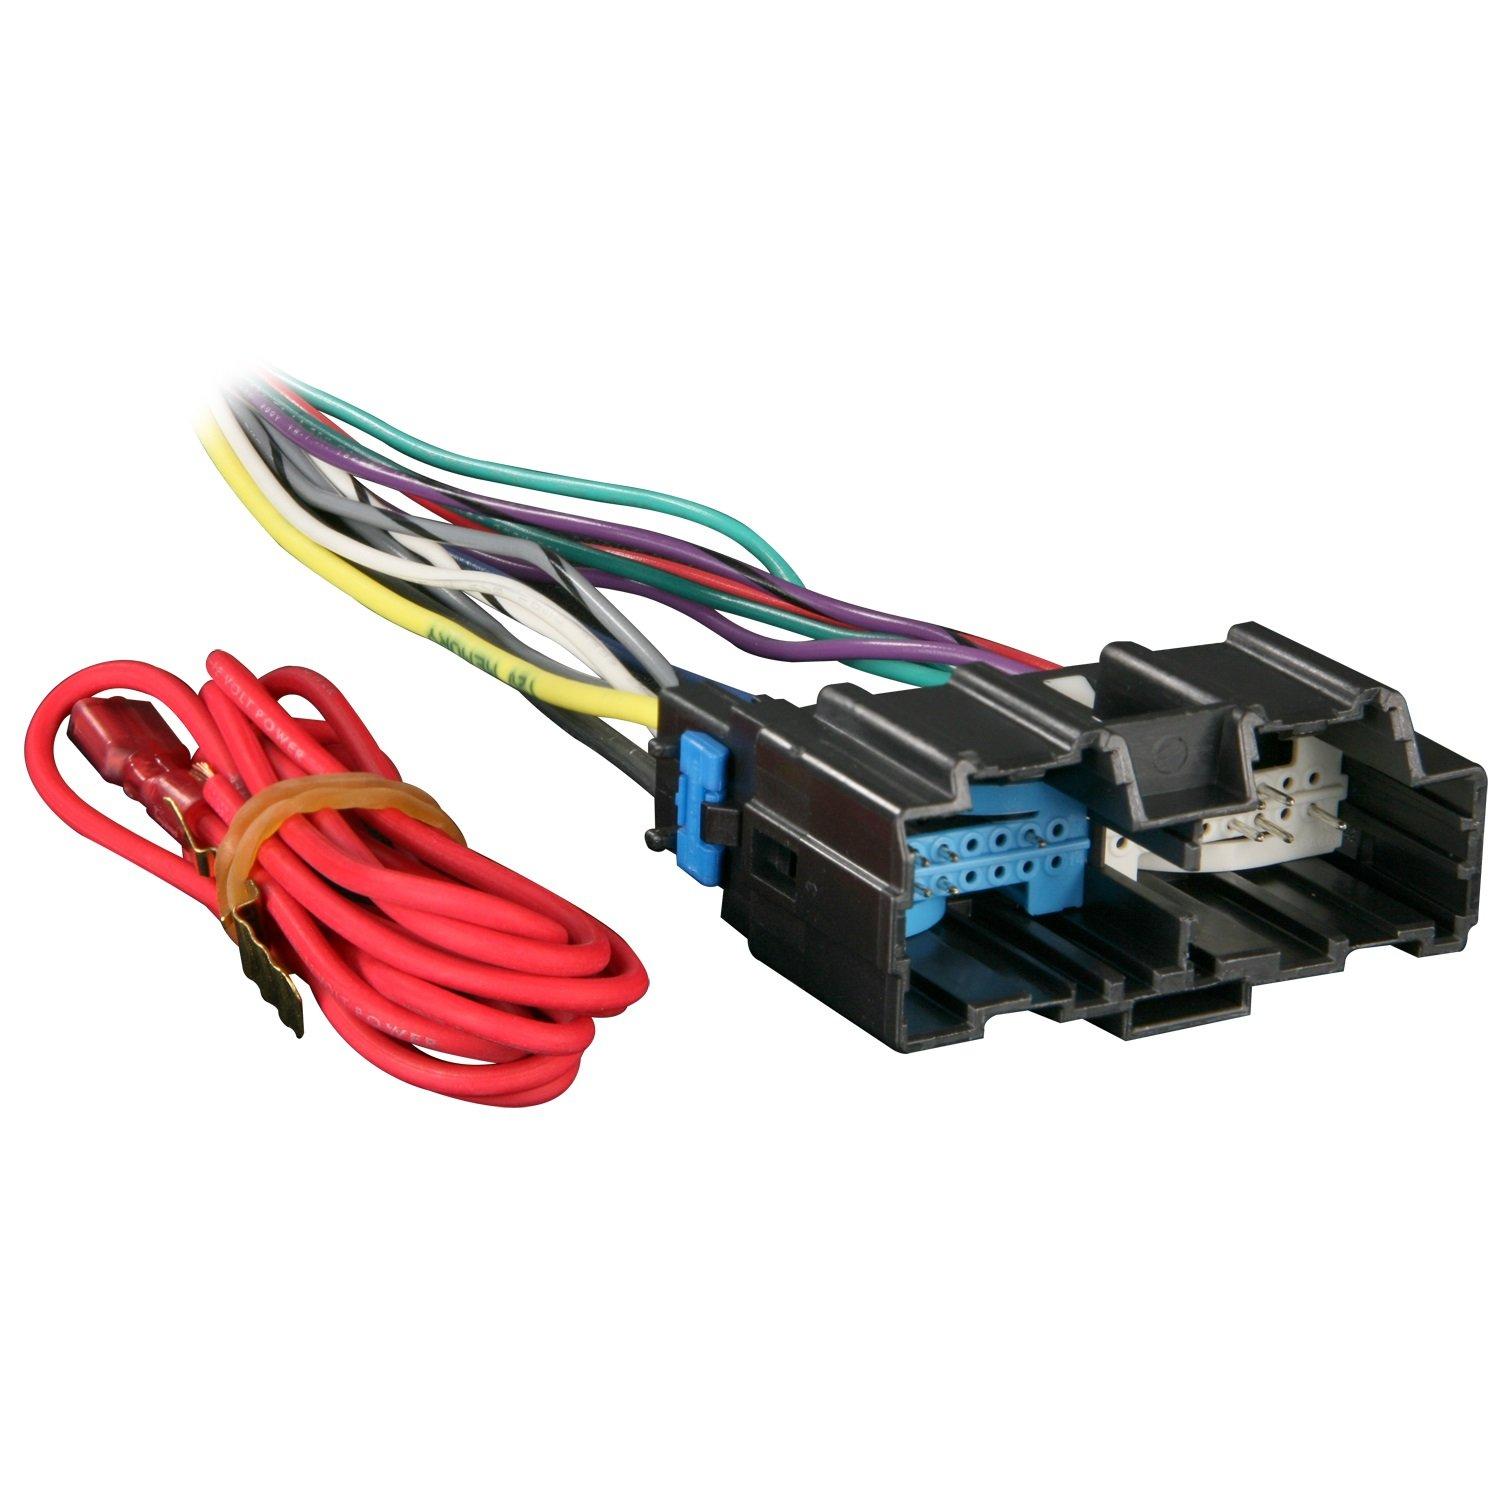 71ZzH dyg7L._SL1500_ amazon com metra 70 2105 radio wiring harness for impala monte Metra Wiring Harness Diagram at gsmportal.co